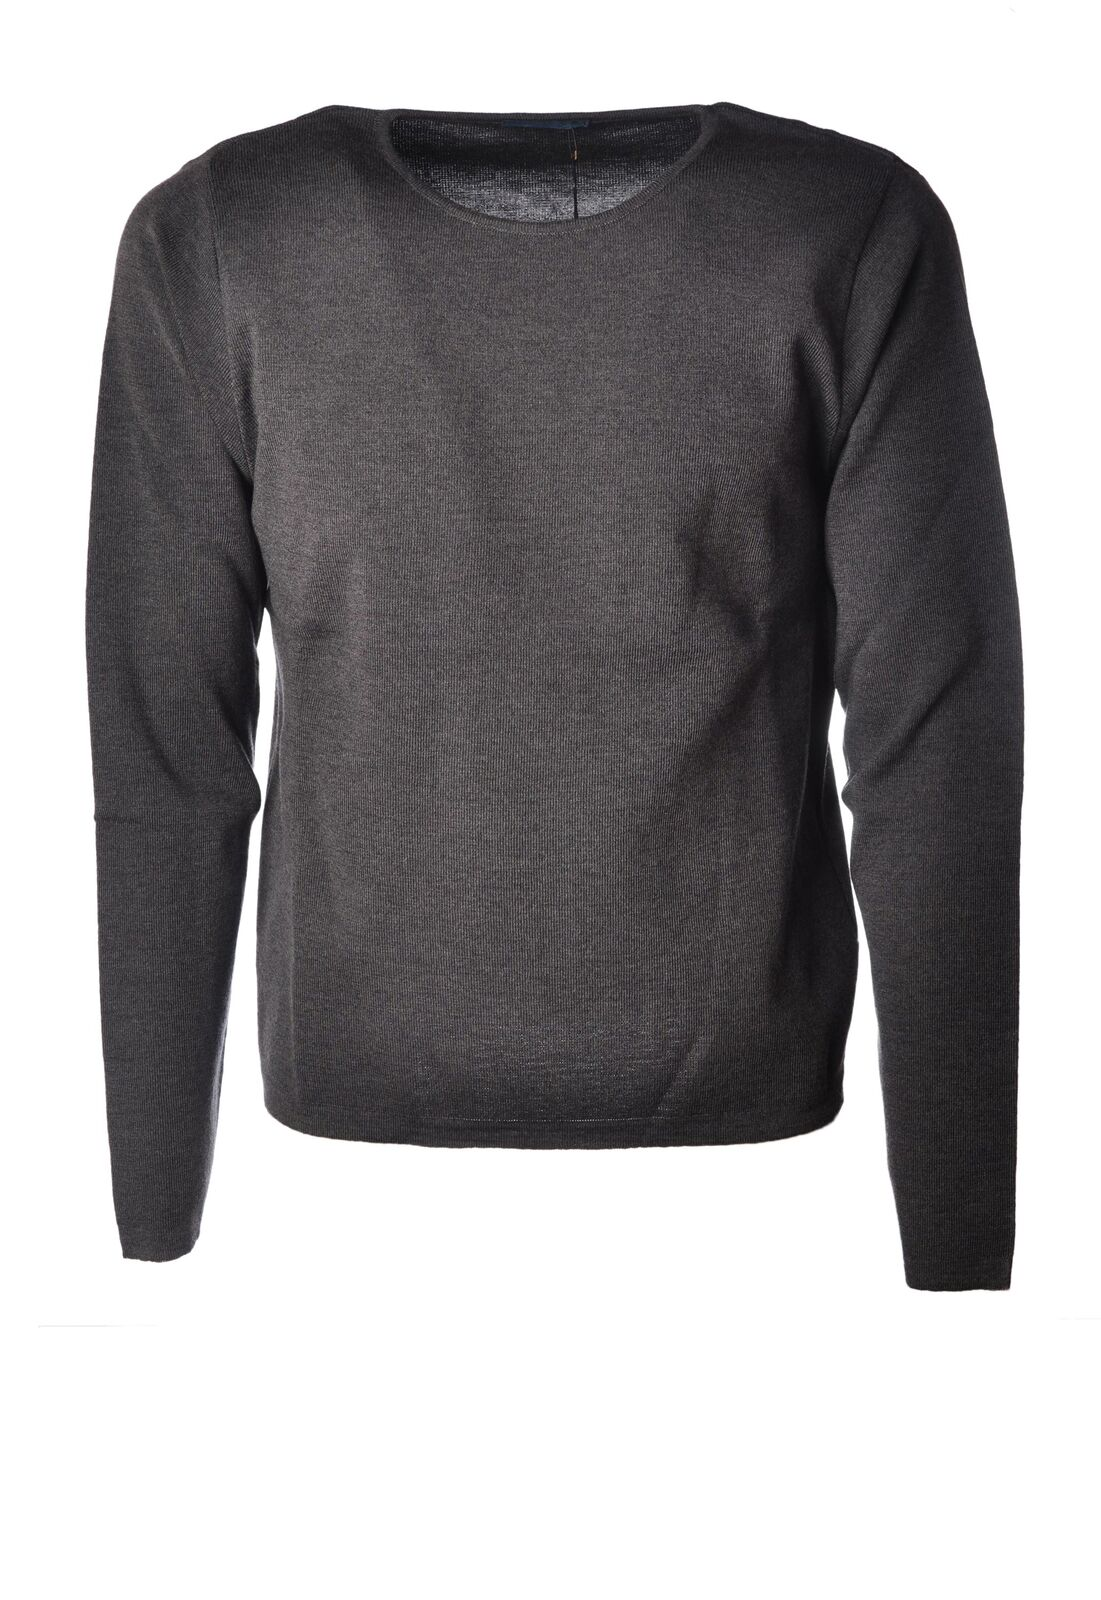 Paolo Fumagalli  -  Sweaters - Male - Grey - 4164528A184904